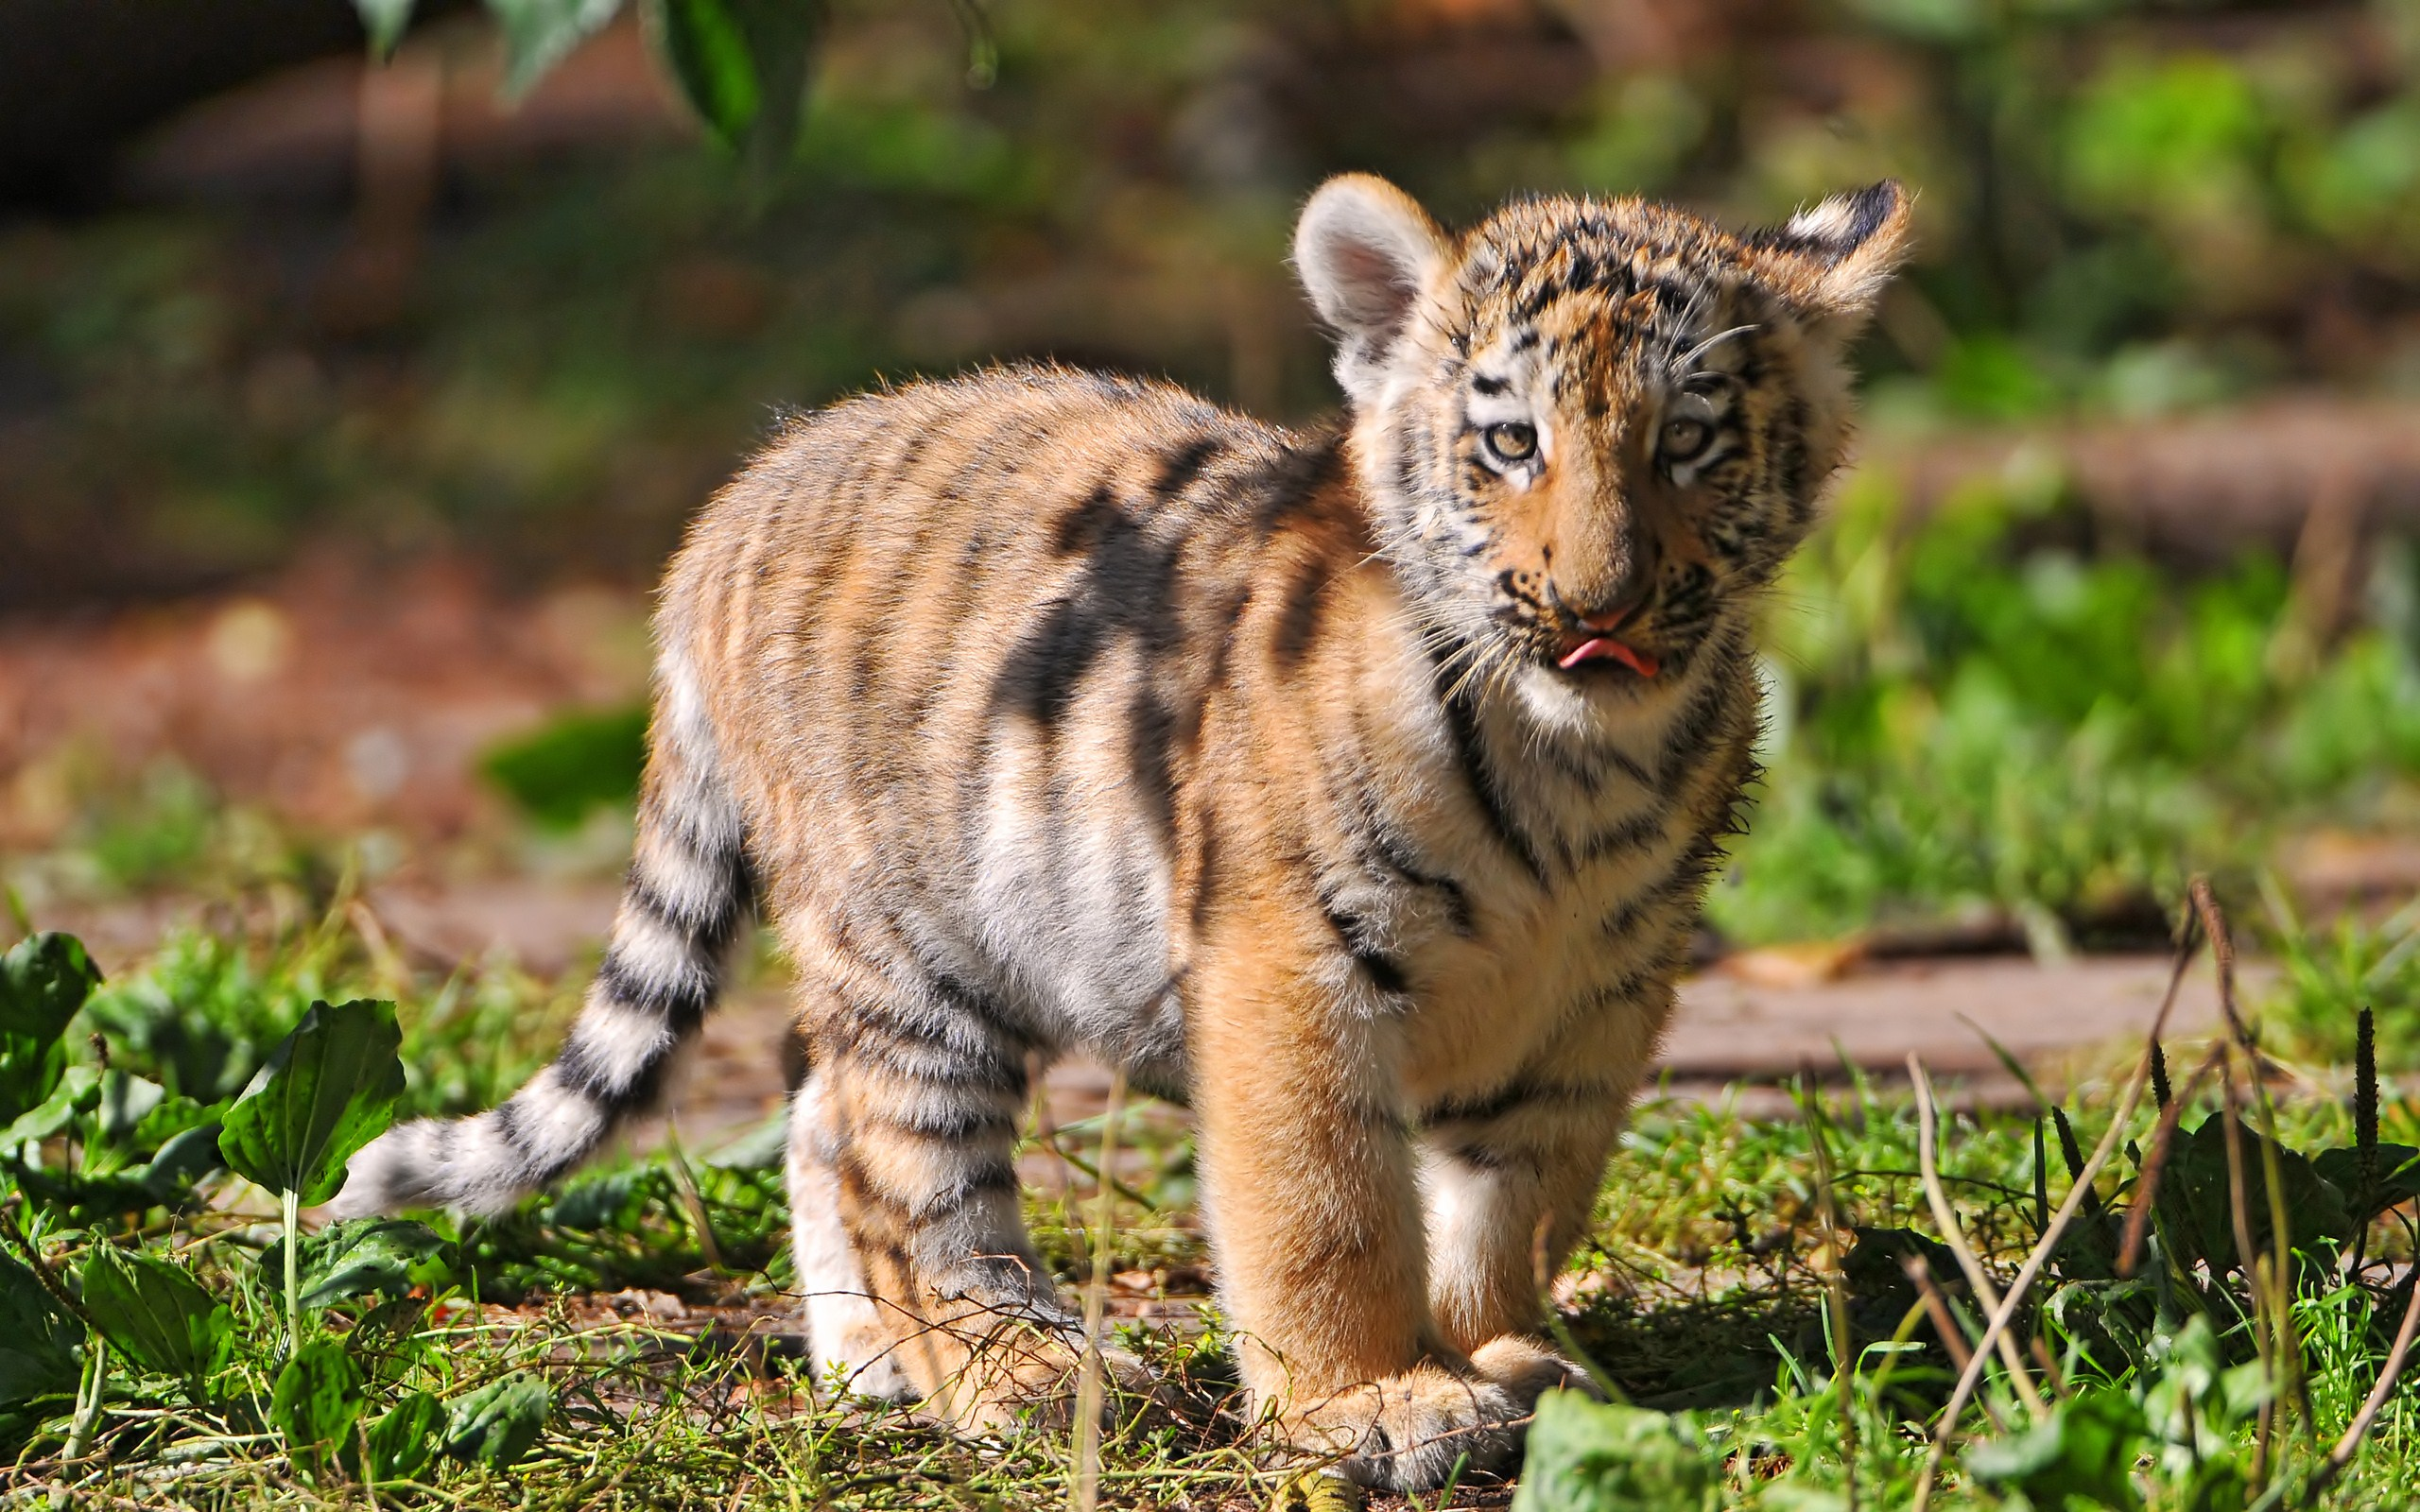 Baby tiger iphone wallpaper - photo#27